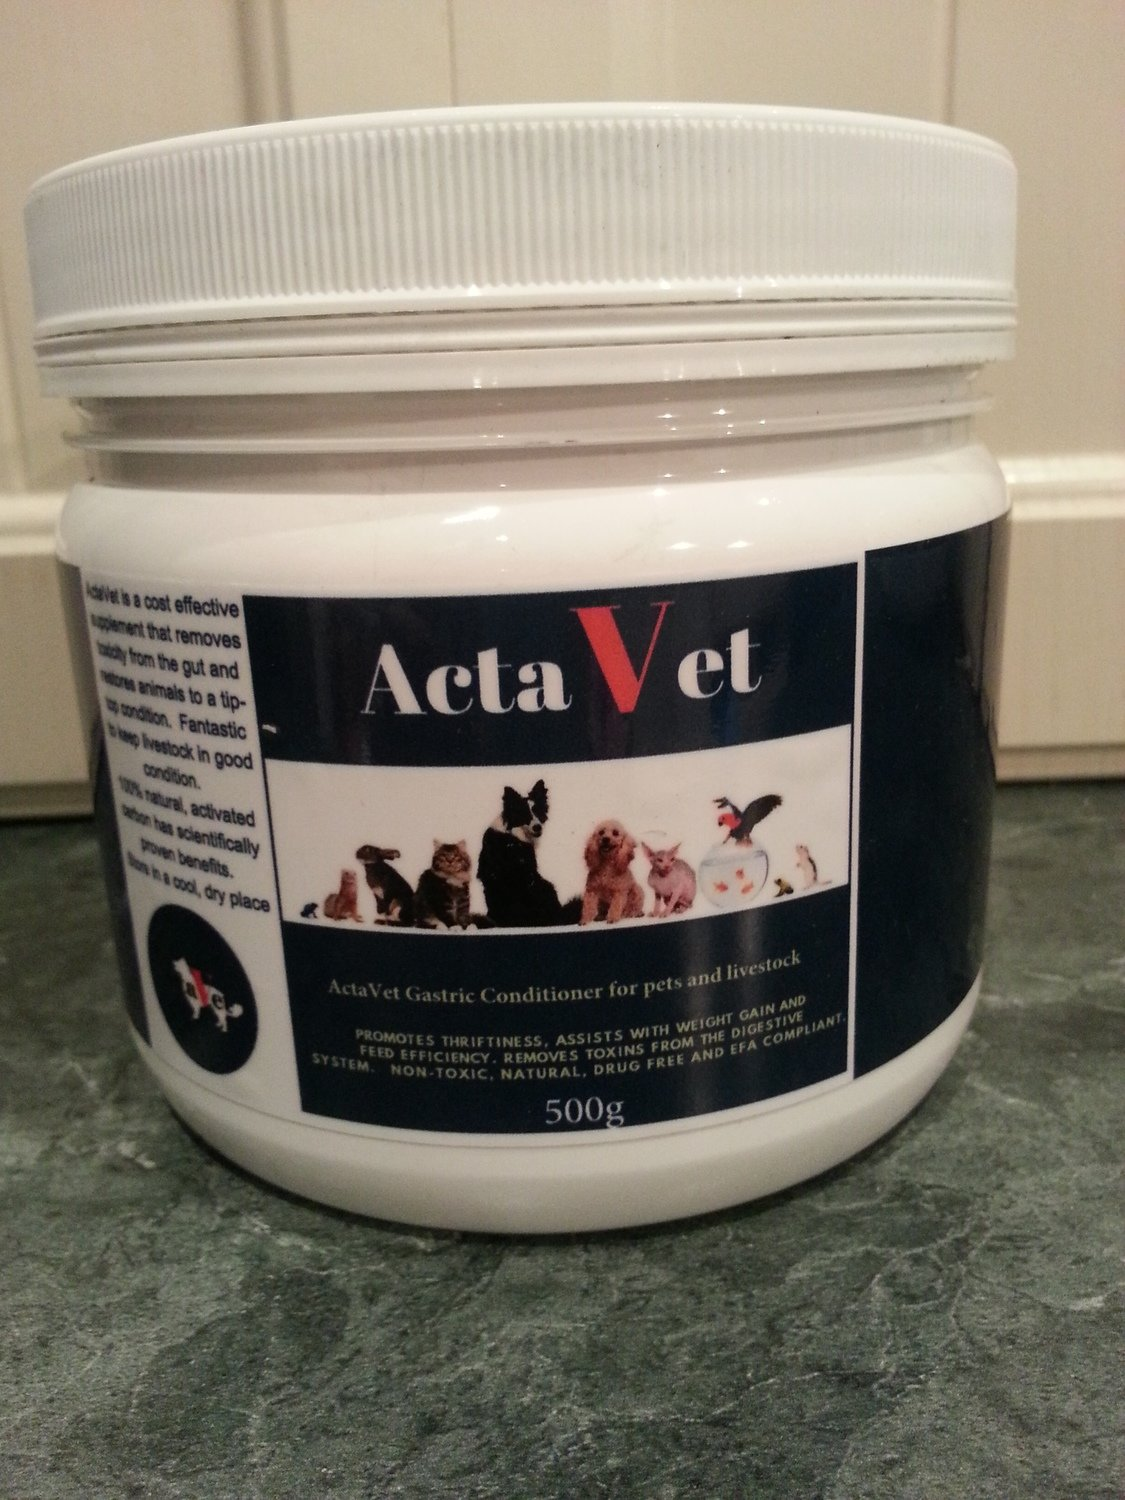 ActaVet 500g - Introductory Price